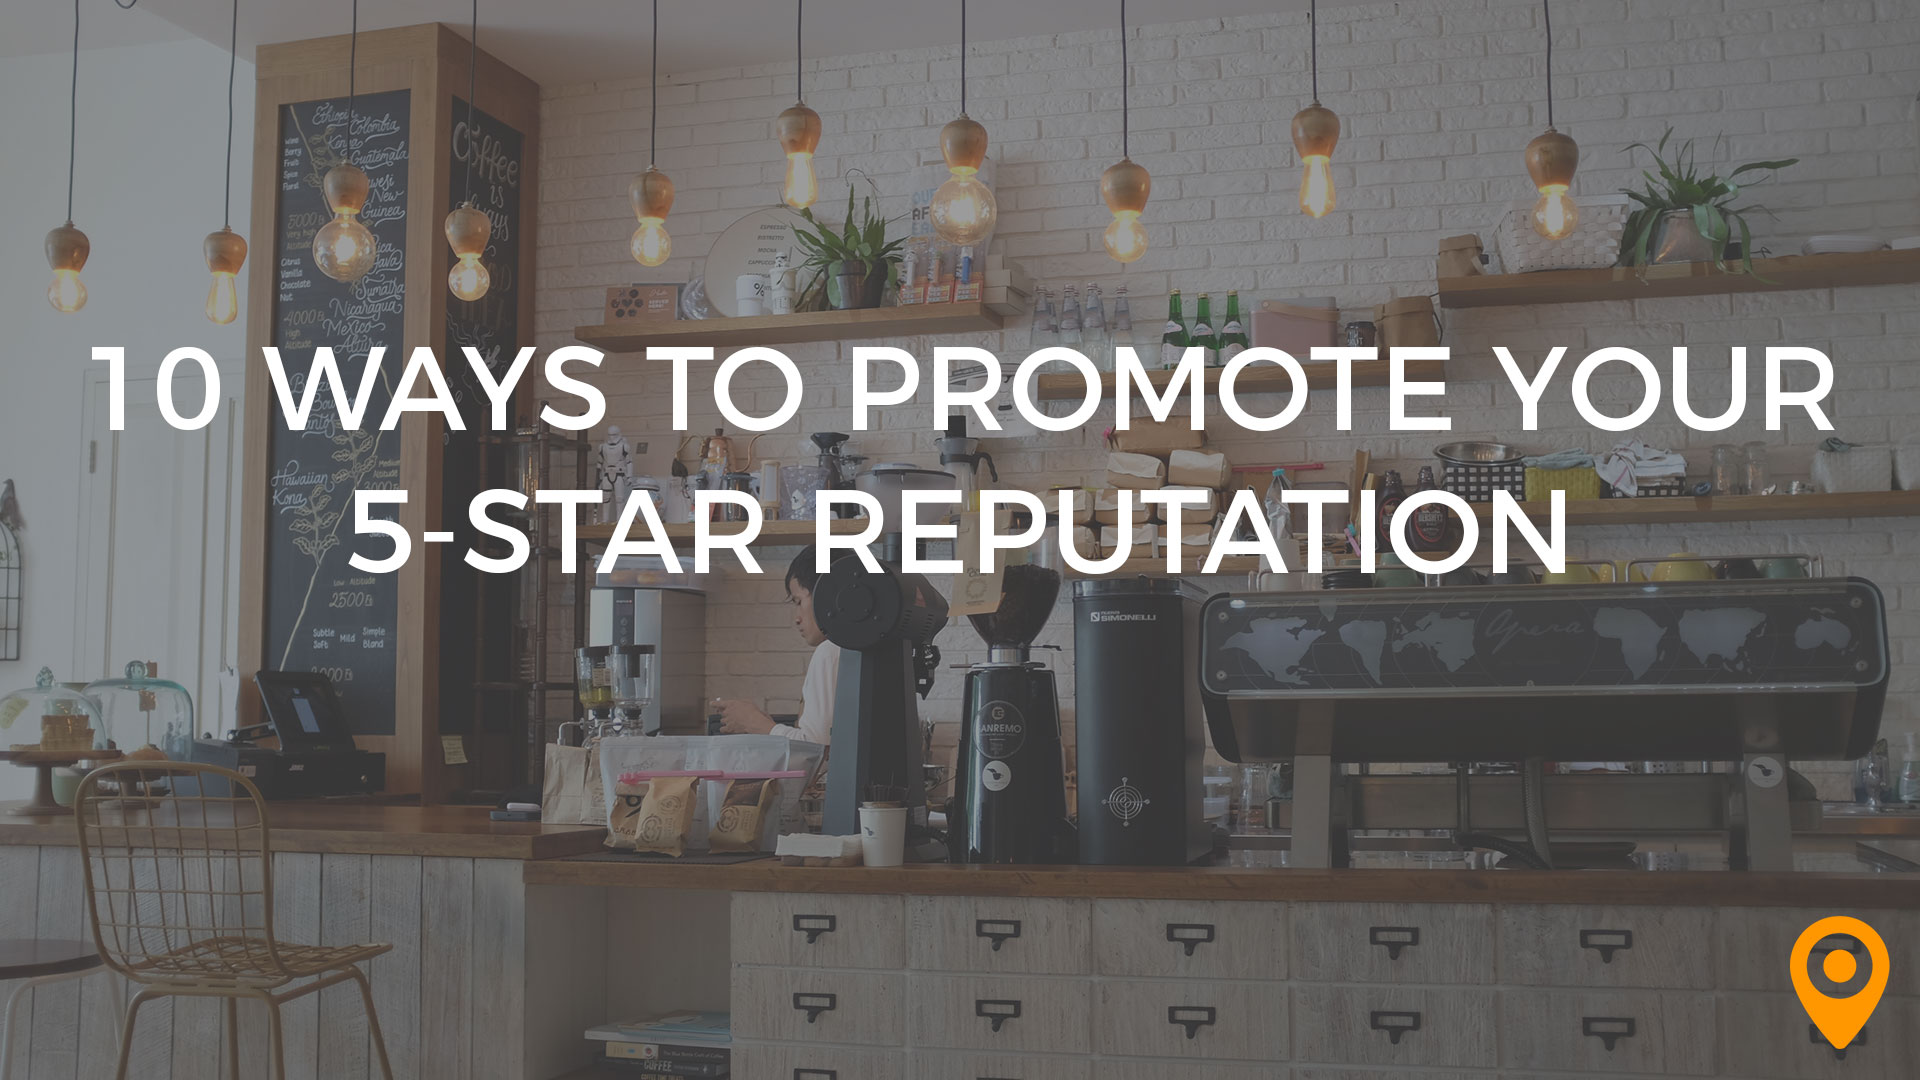 10-Ways-to-Promote-Your-5-Star-Reputation